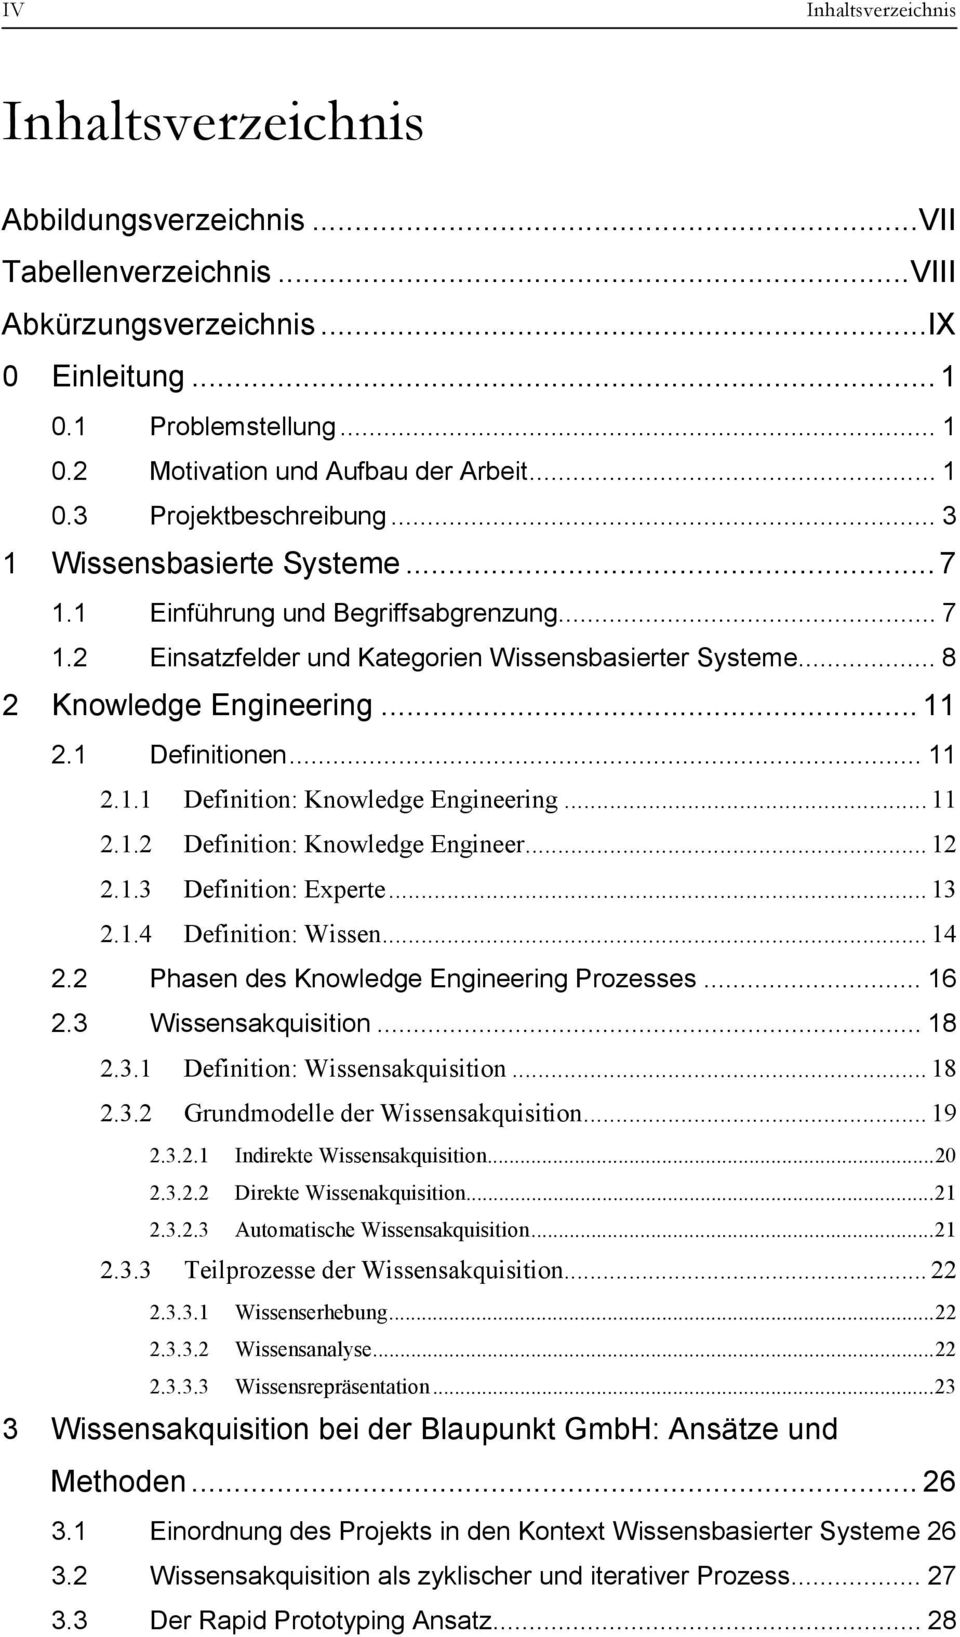 .. 11 2.1 Definitionen... 11 2.1.1 Definition: Knowledge Engineering... 11 2.1.2 Definition: Knowledge Engineer... 12 2.1.3 Definition: Experte... 13 2.1.4 Definition: Wissen... 14 2.